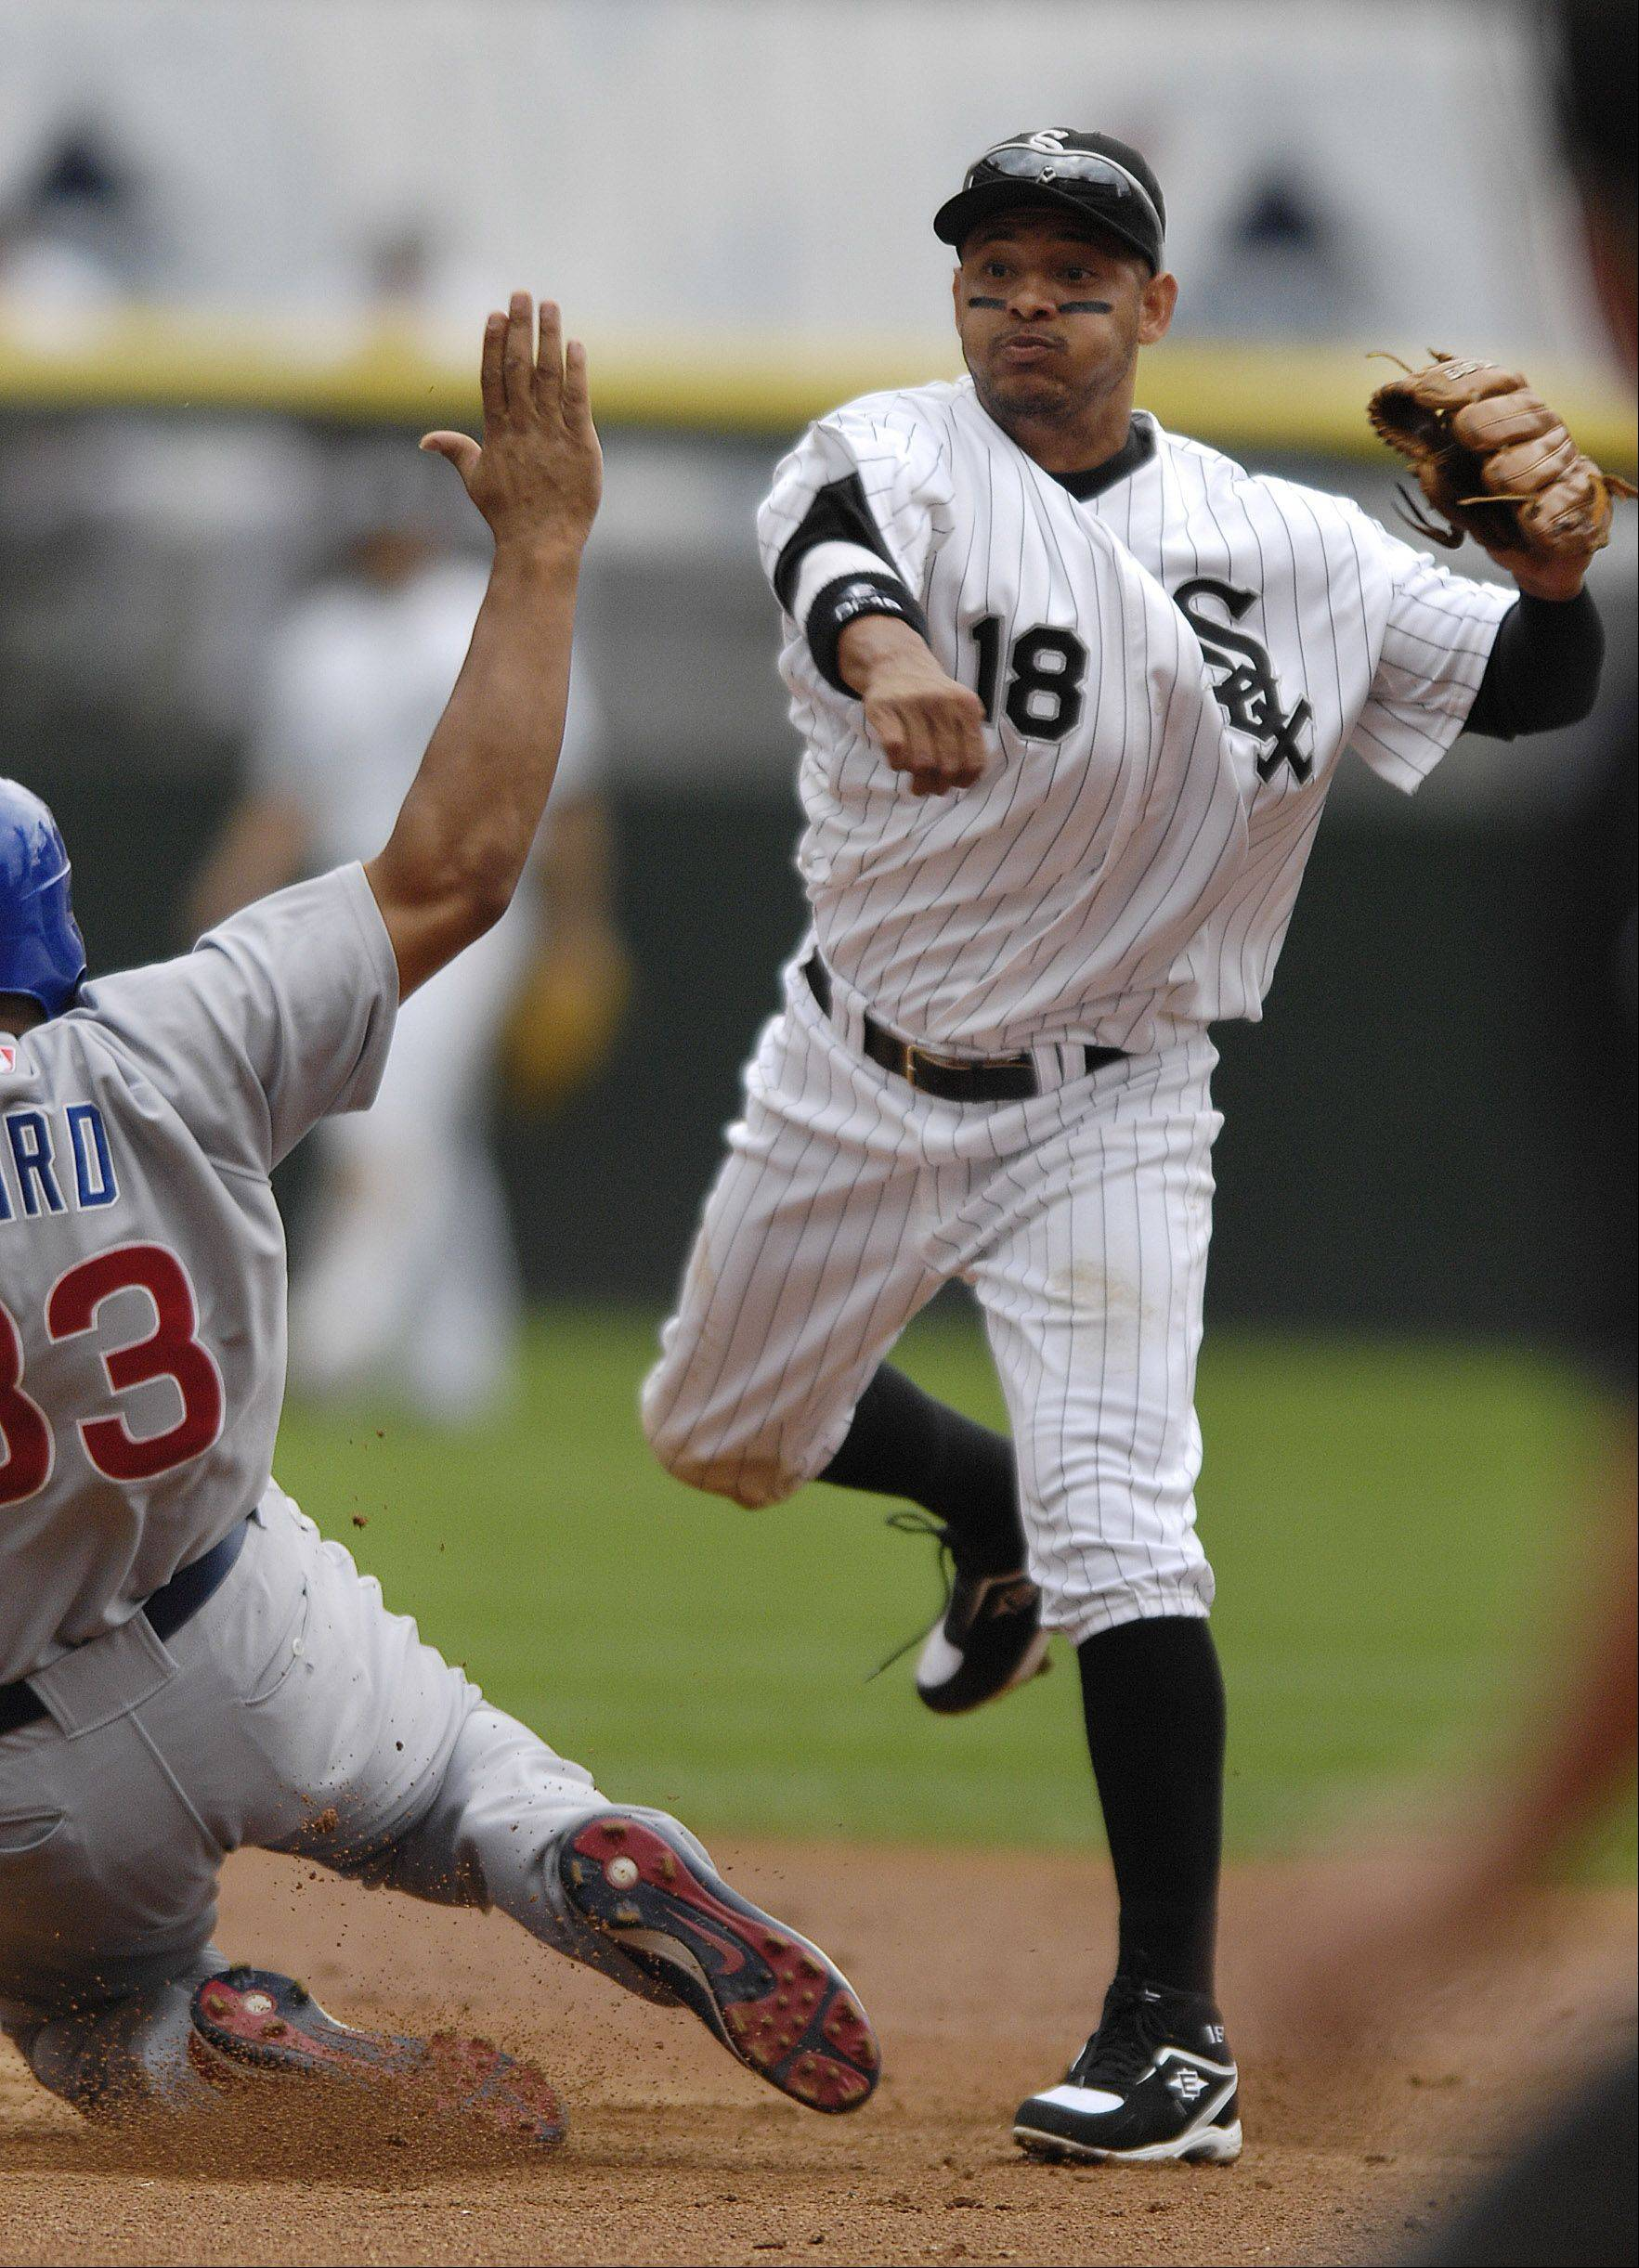 White Sox shortstop Orlando Cabrera throws as Cub Daryle Ward breaks up the double play in the second inning of the White Sox 10-3 win Friday at U.S. Cellular Field.